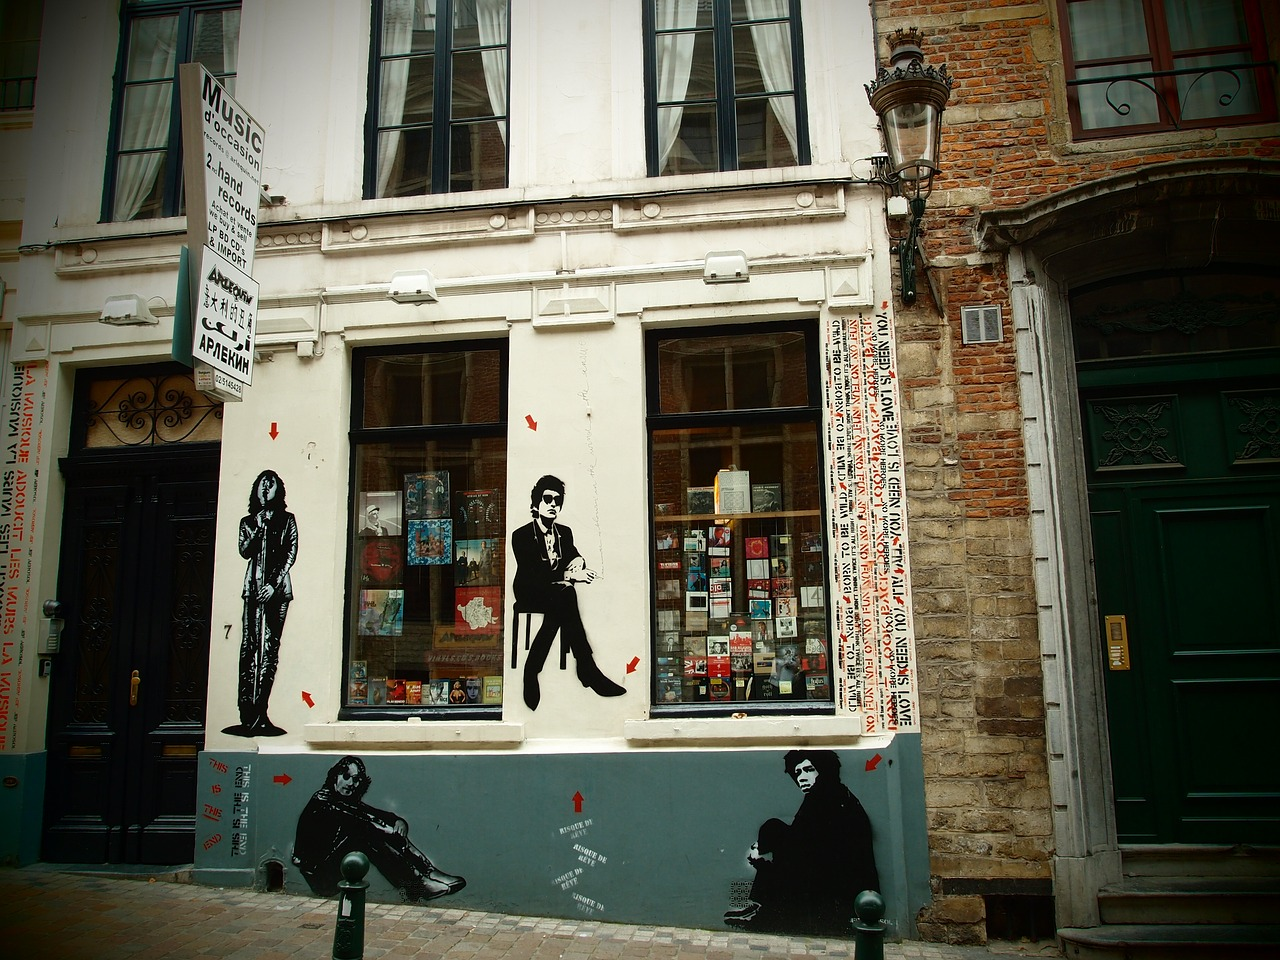 a music shop,musicians,street art,graffiti,bob marley,sid vicious,jimi hendrix,john lennon,brussels,free pictures, free photos, free images, royalty free, free illustrations, public domain